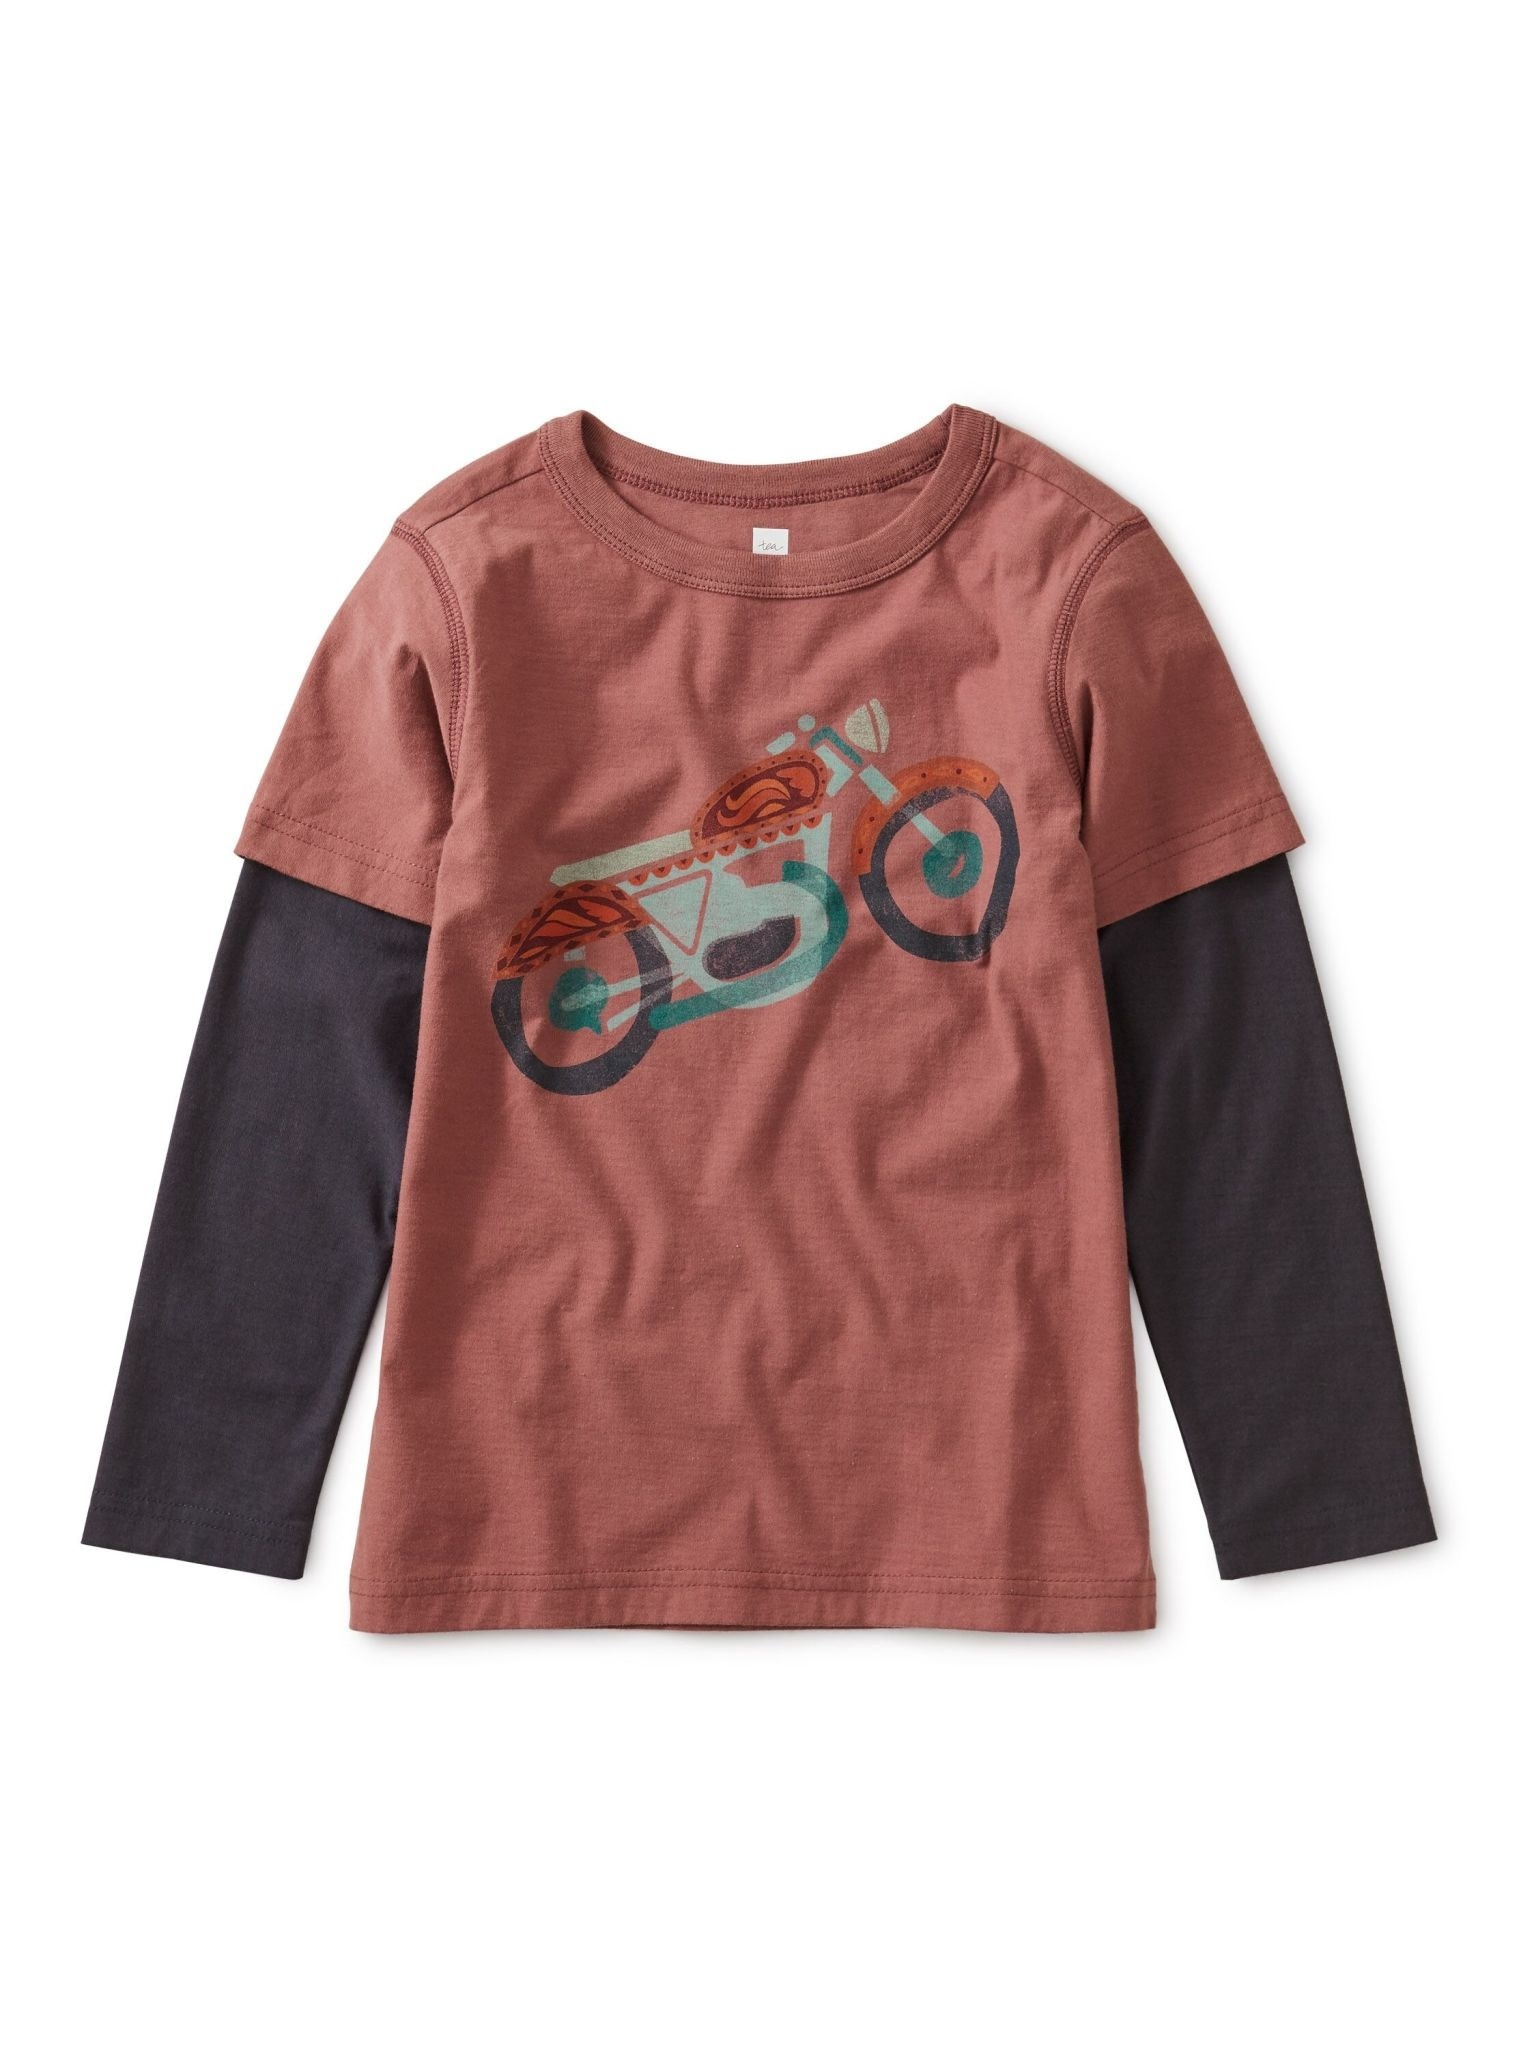 Tea Collection Motorcycle Graphic Layered Tee - Cassis   3